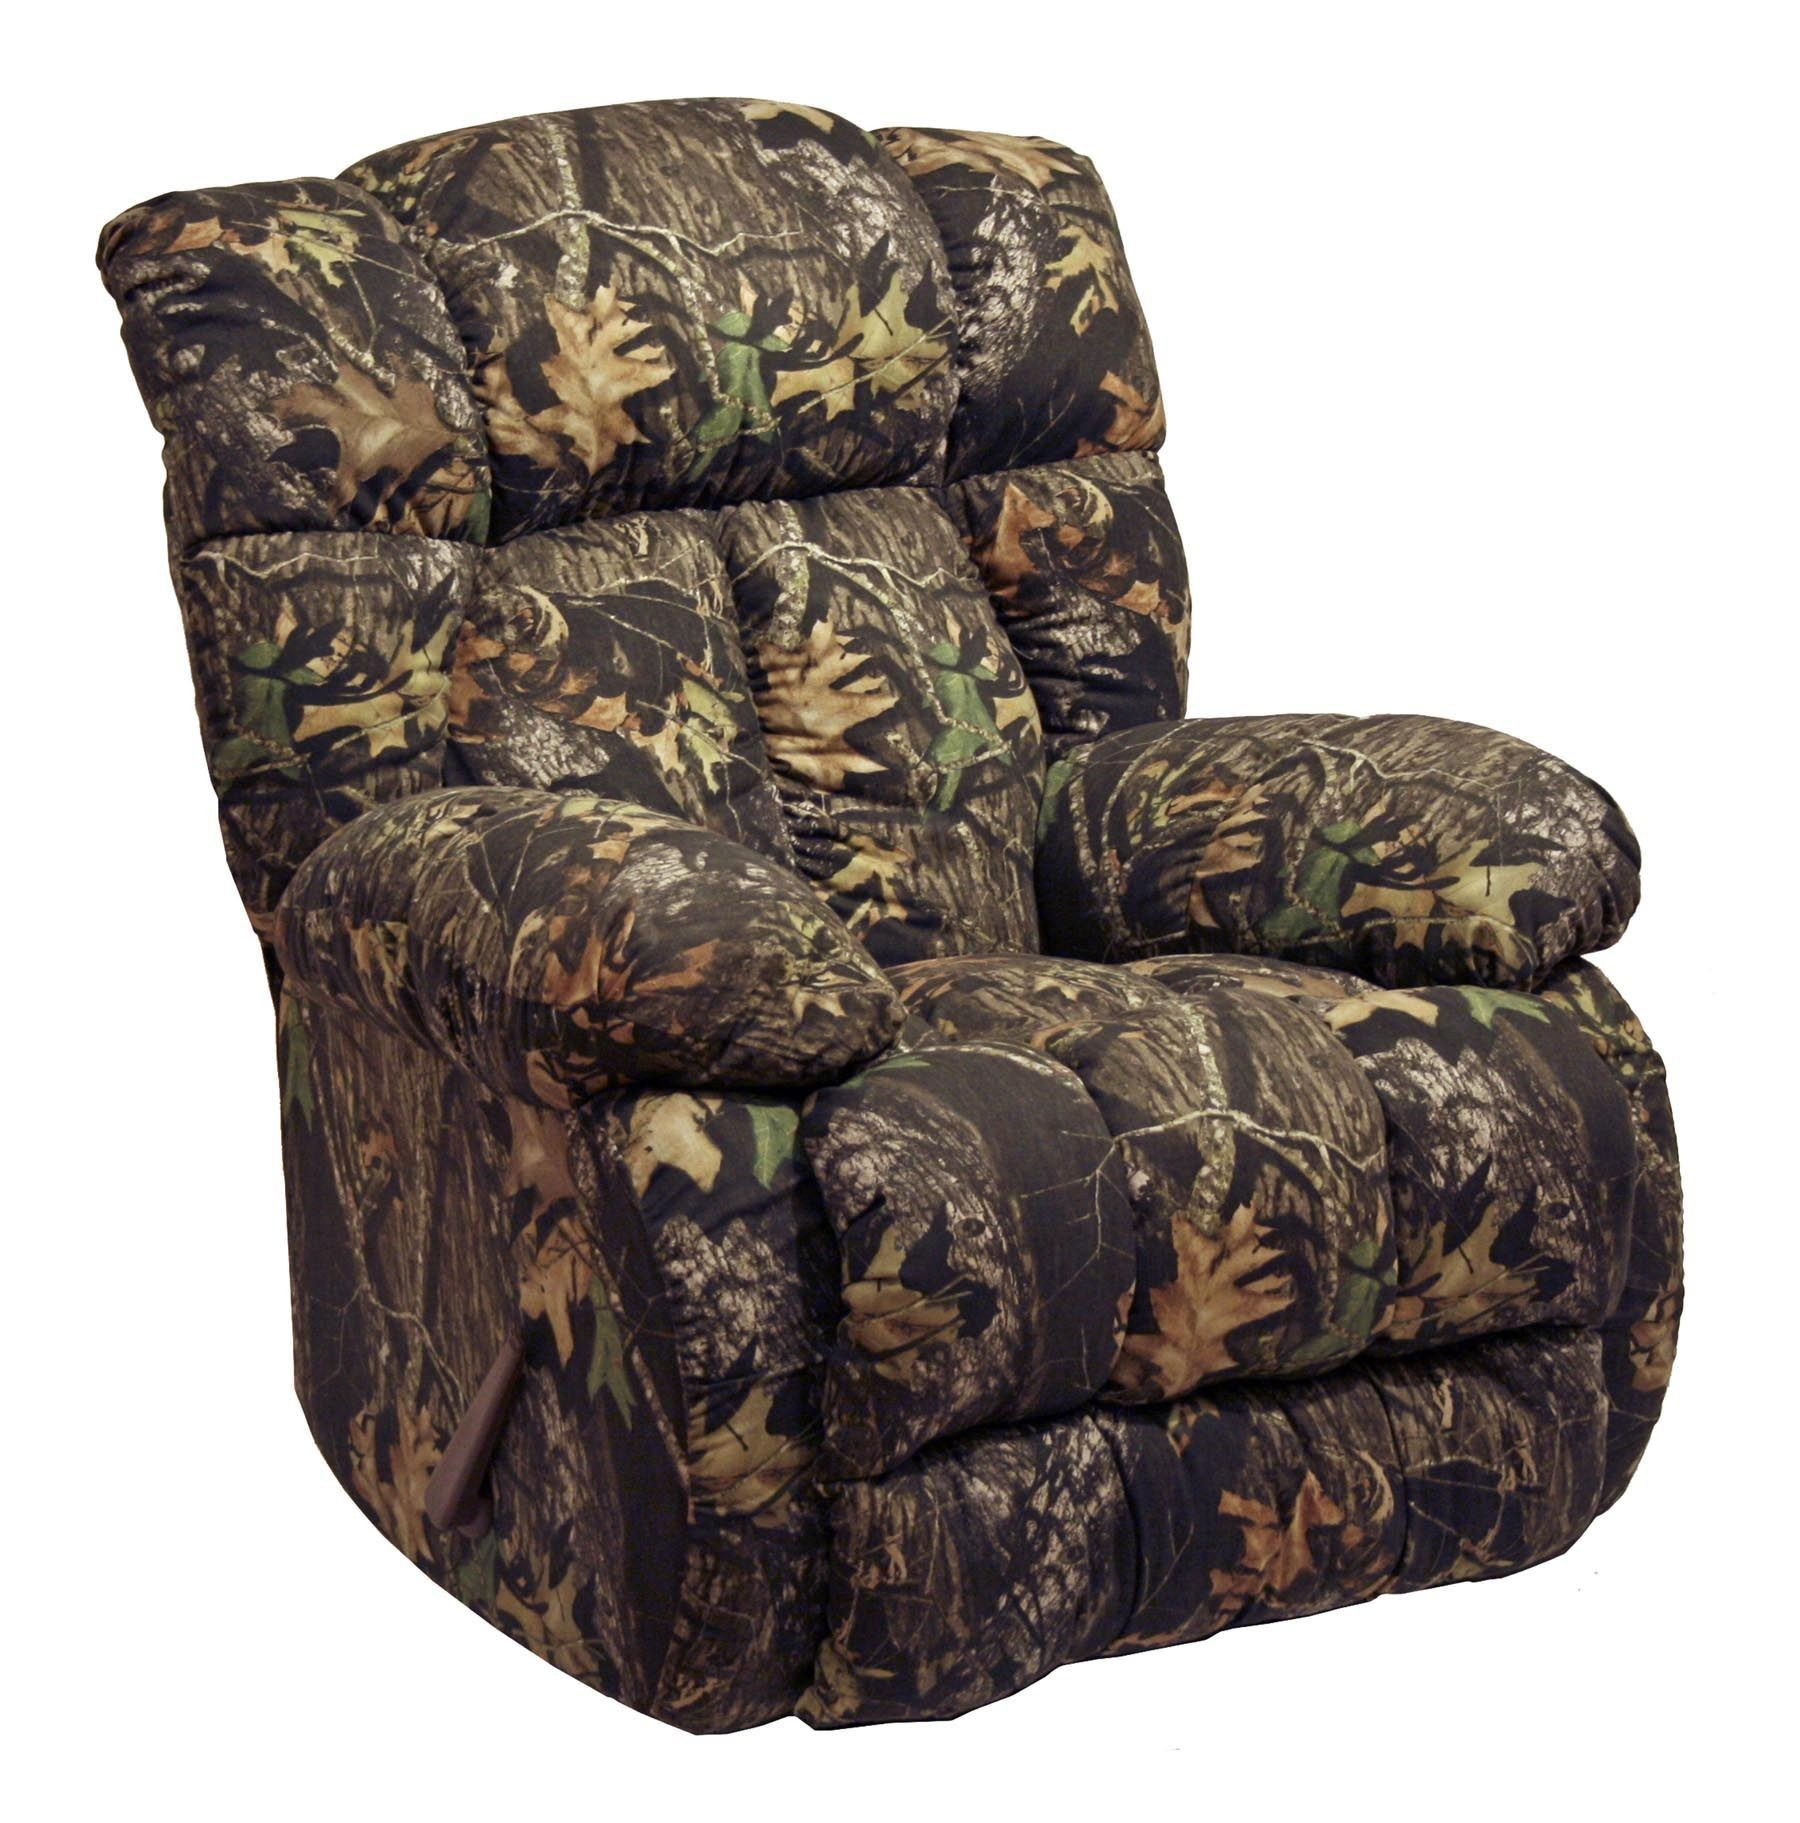 Laredo Mossy Oak Camo Rocker Recliner From Catnapper